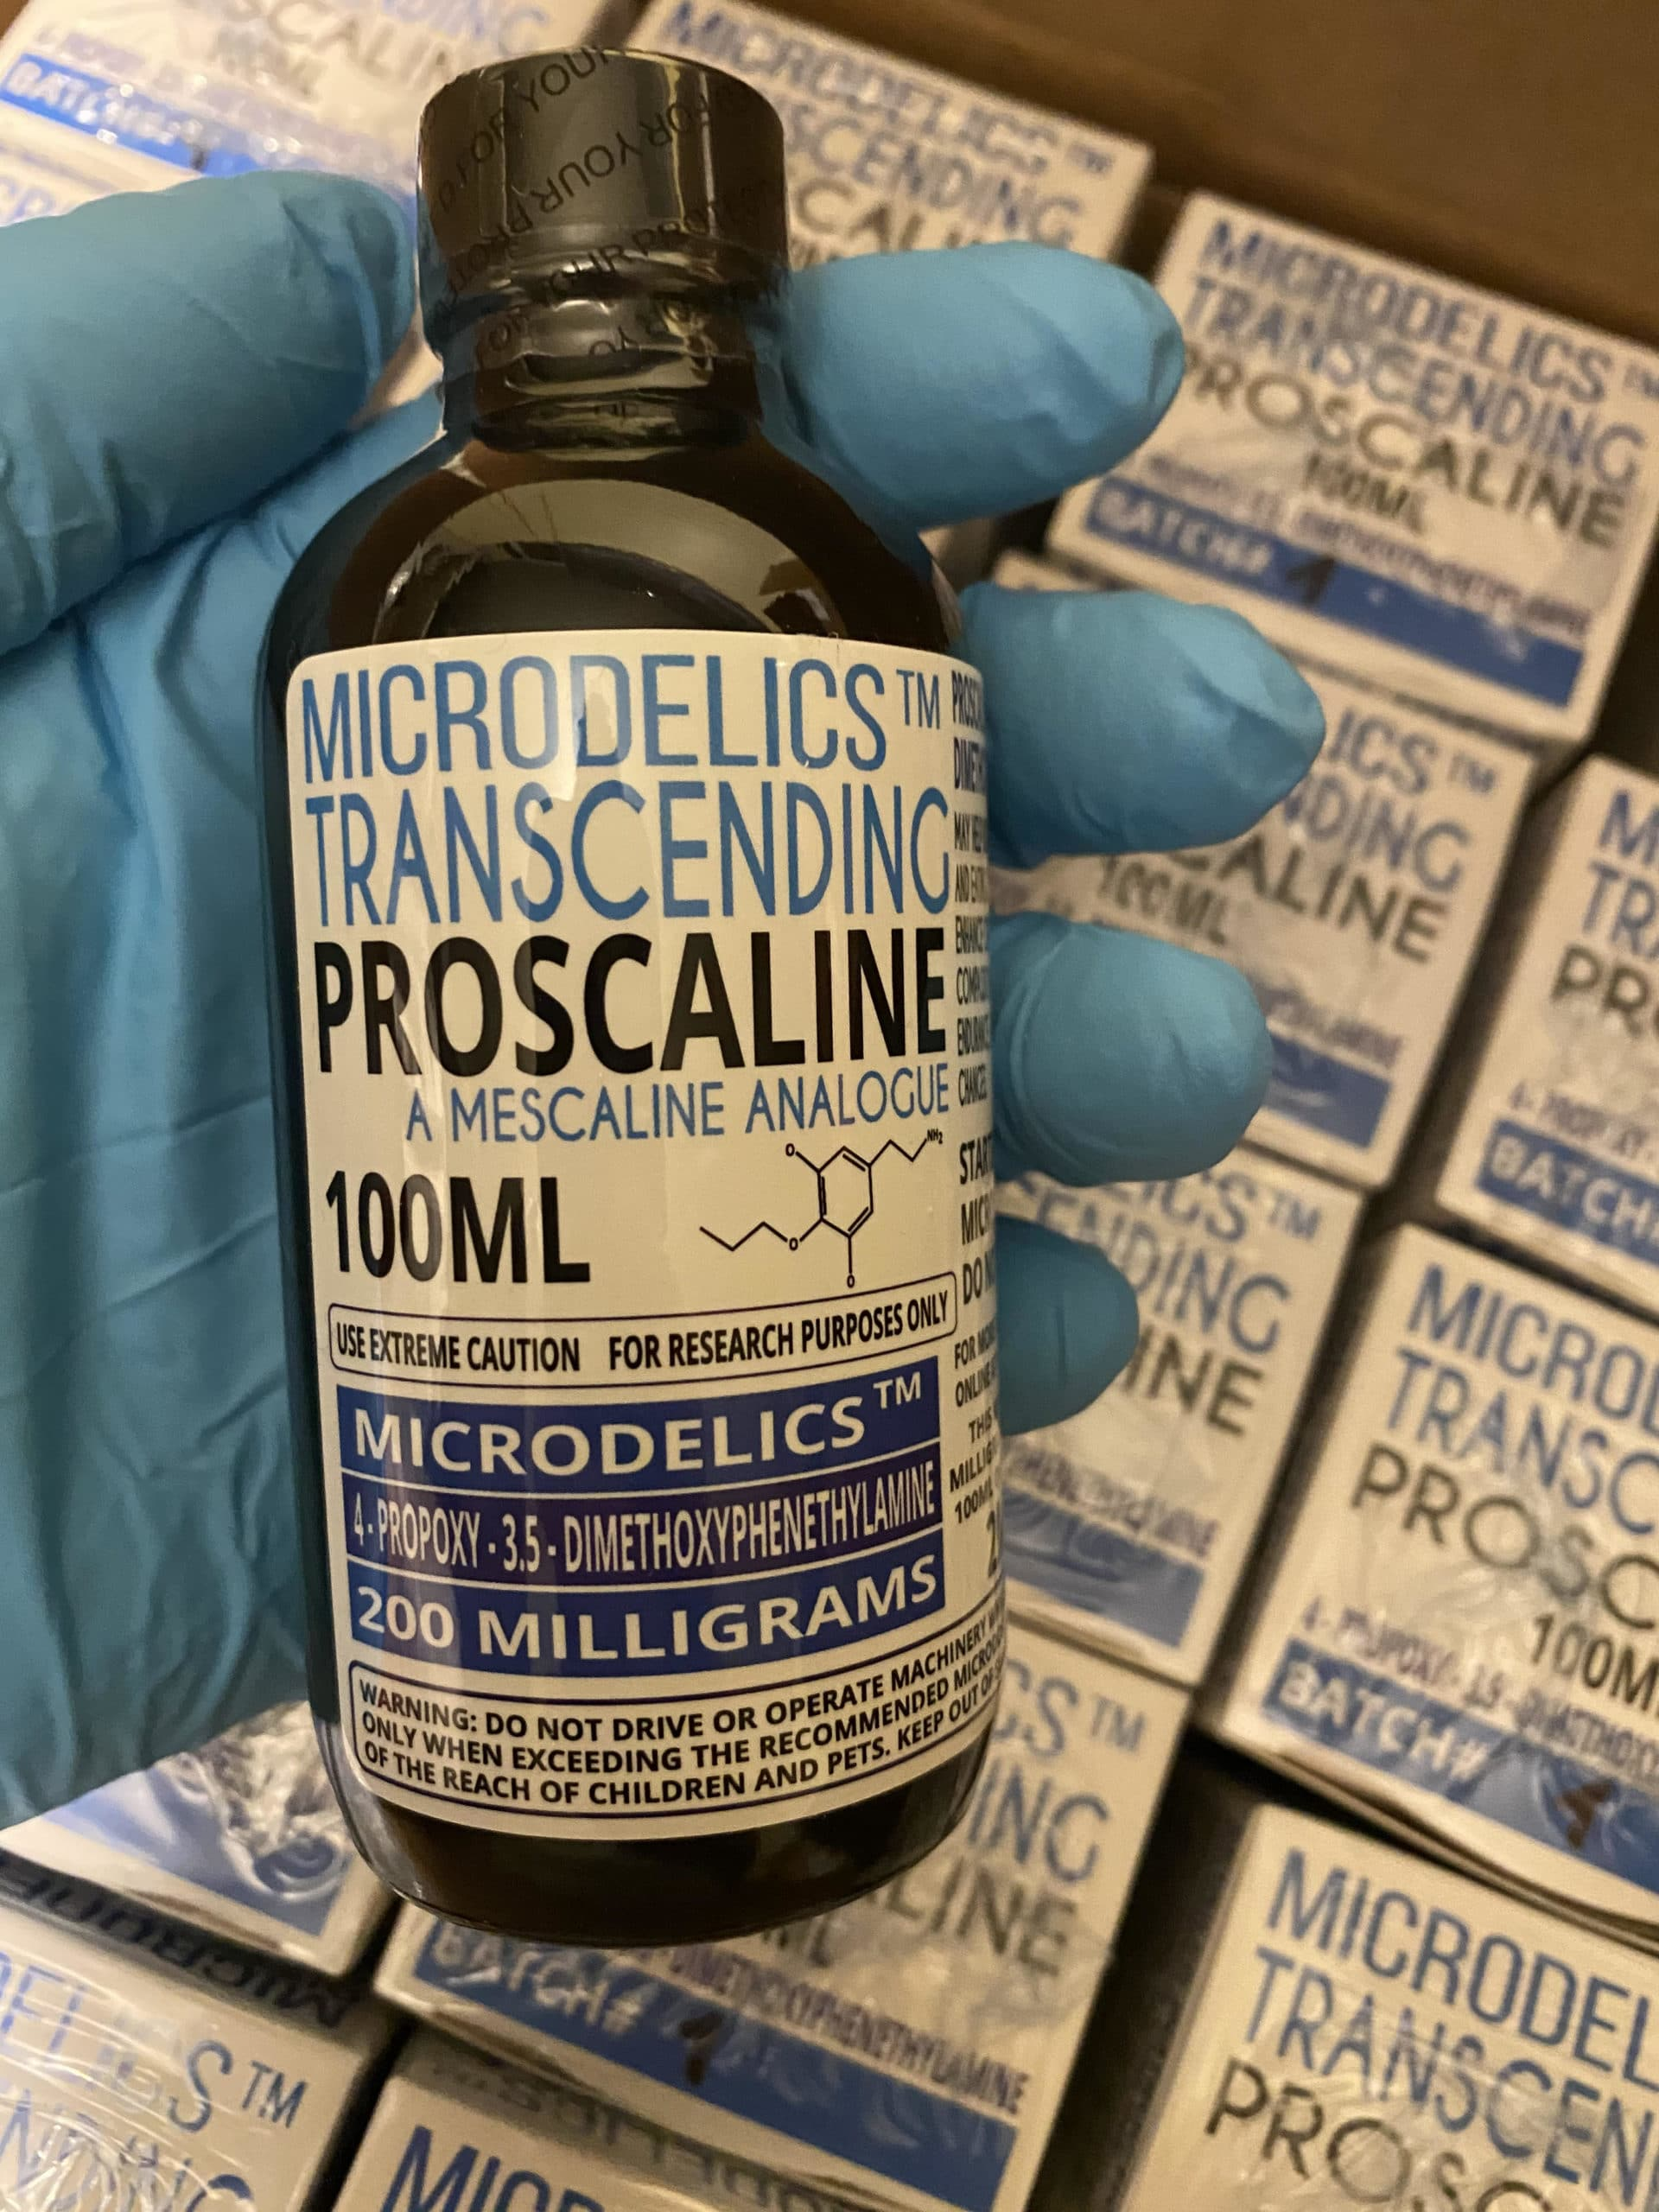 Mescaline Analogue Microdosing Kit by Microdelics